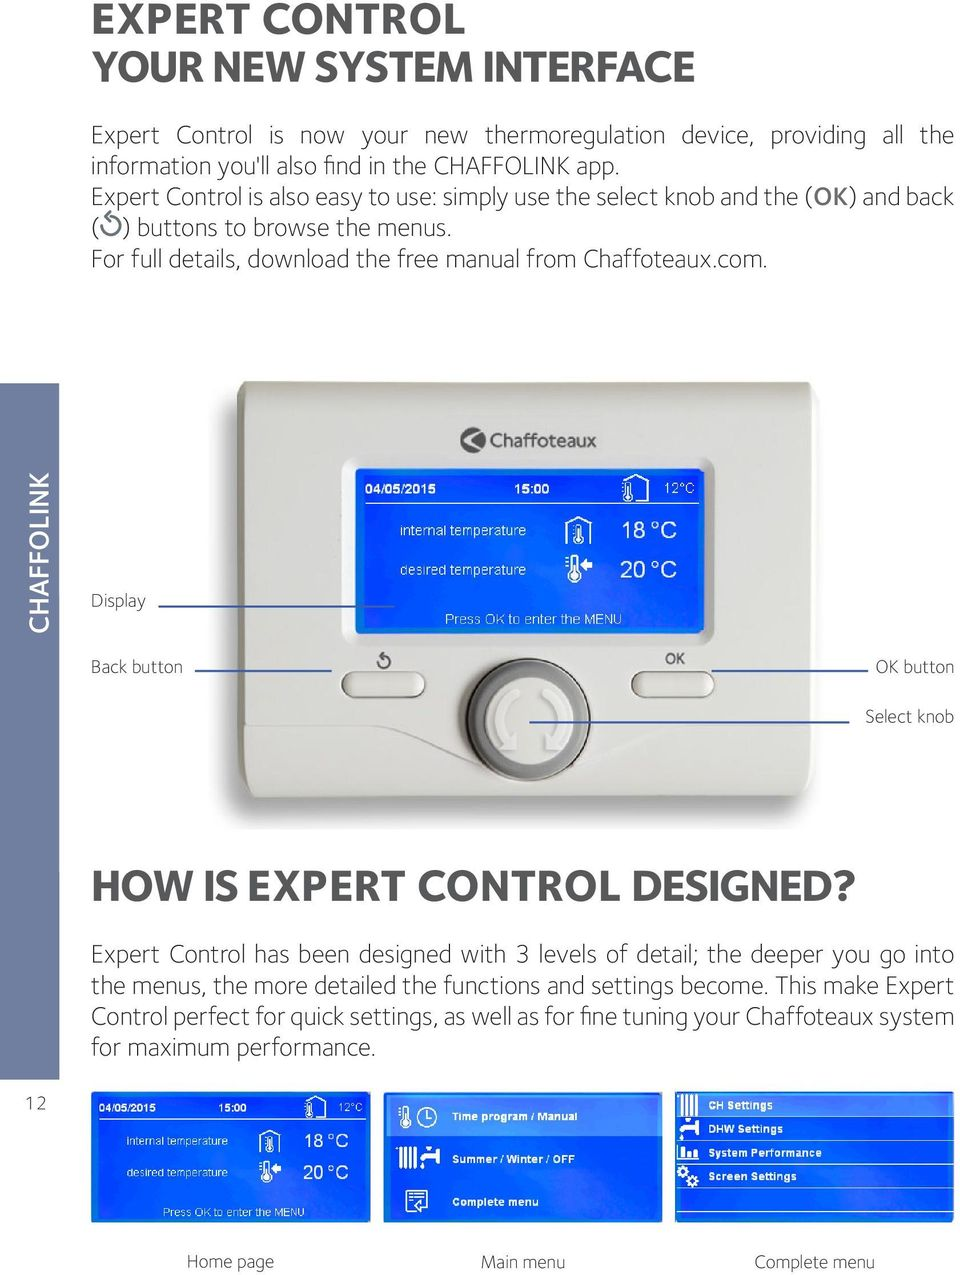 com. Display Back button OK button Select knob HOW IS EXPERT CONTROL DESIGNED?